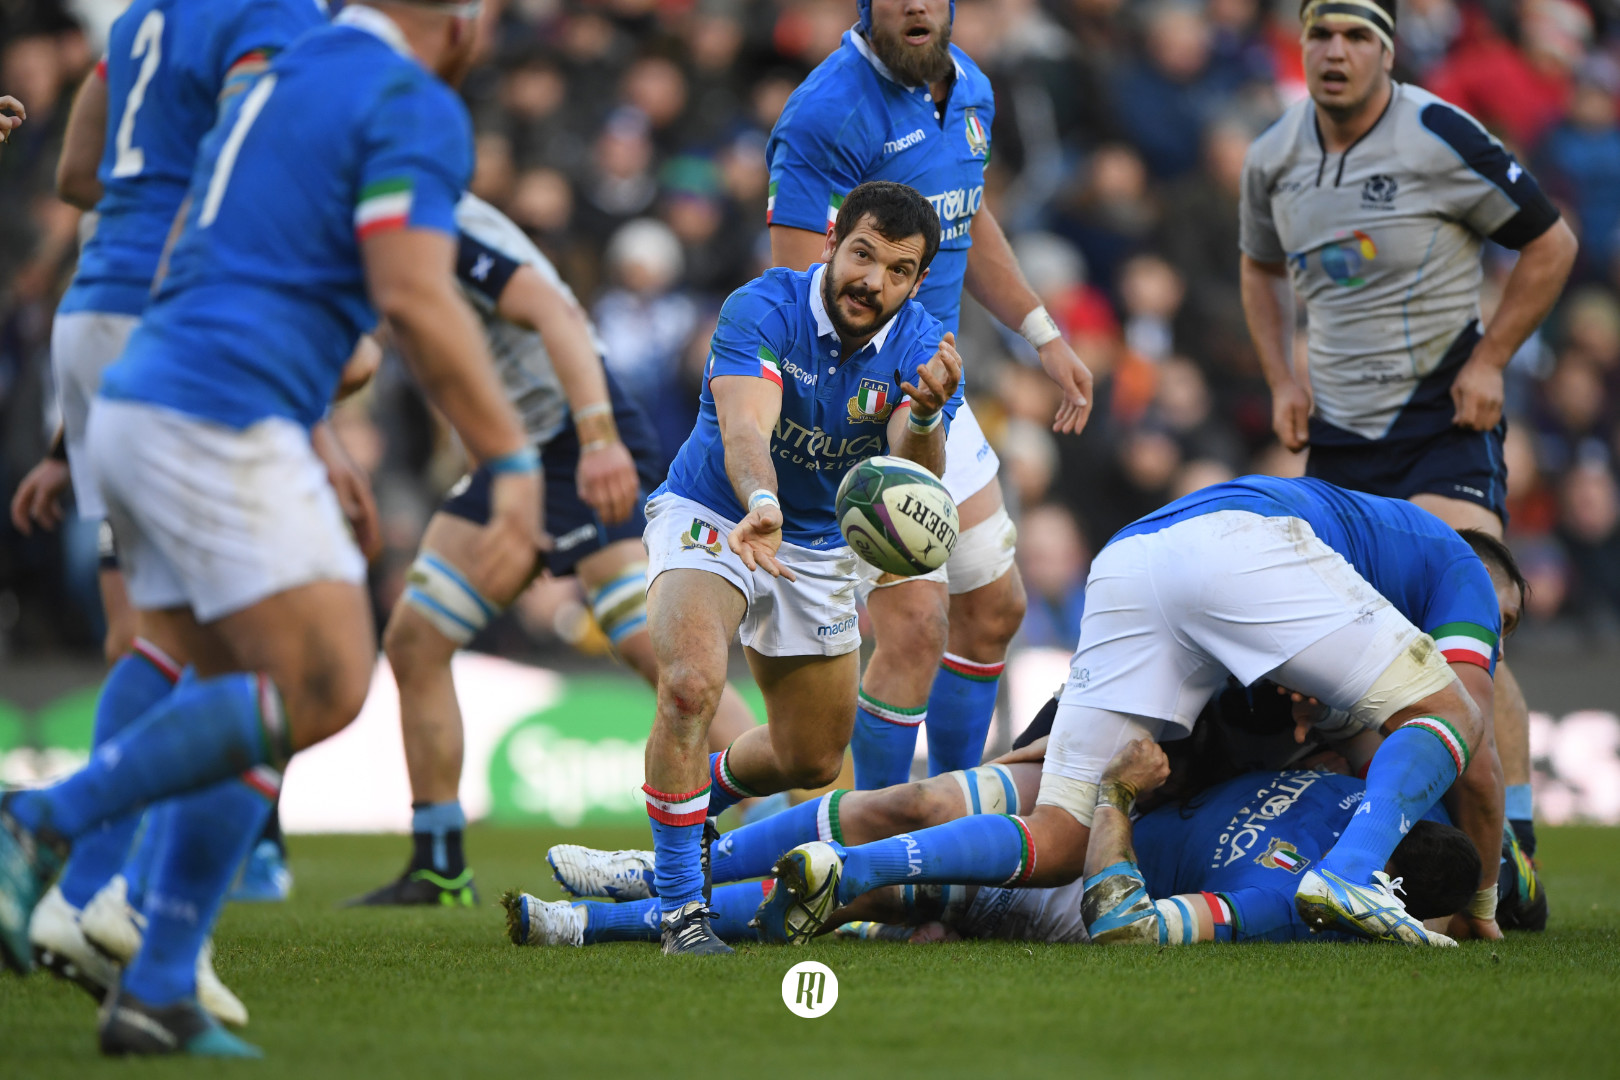 Did Italy's Murrayfield defeat signal the start of a rise in fortunes for the Azzurri?